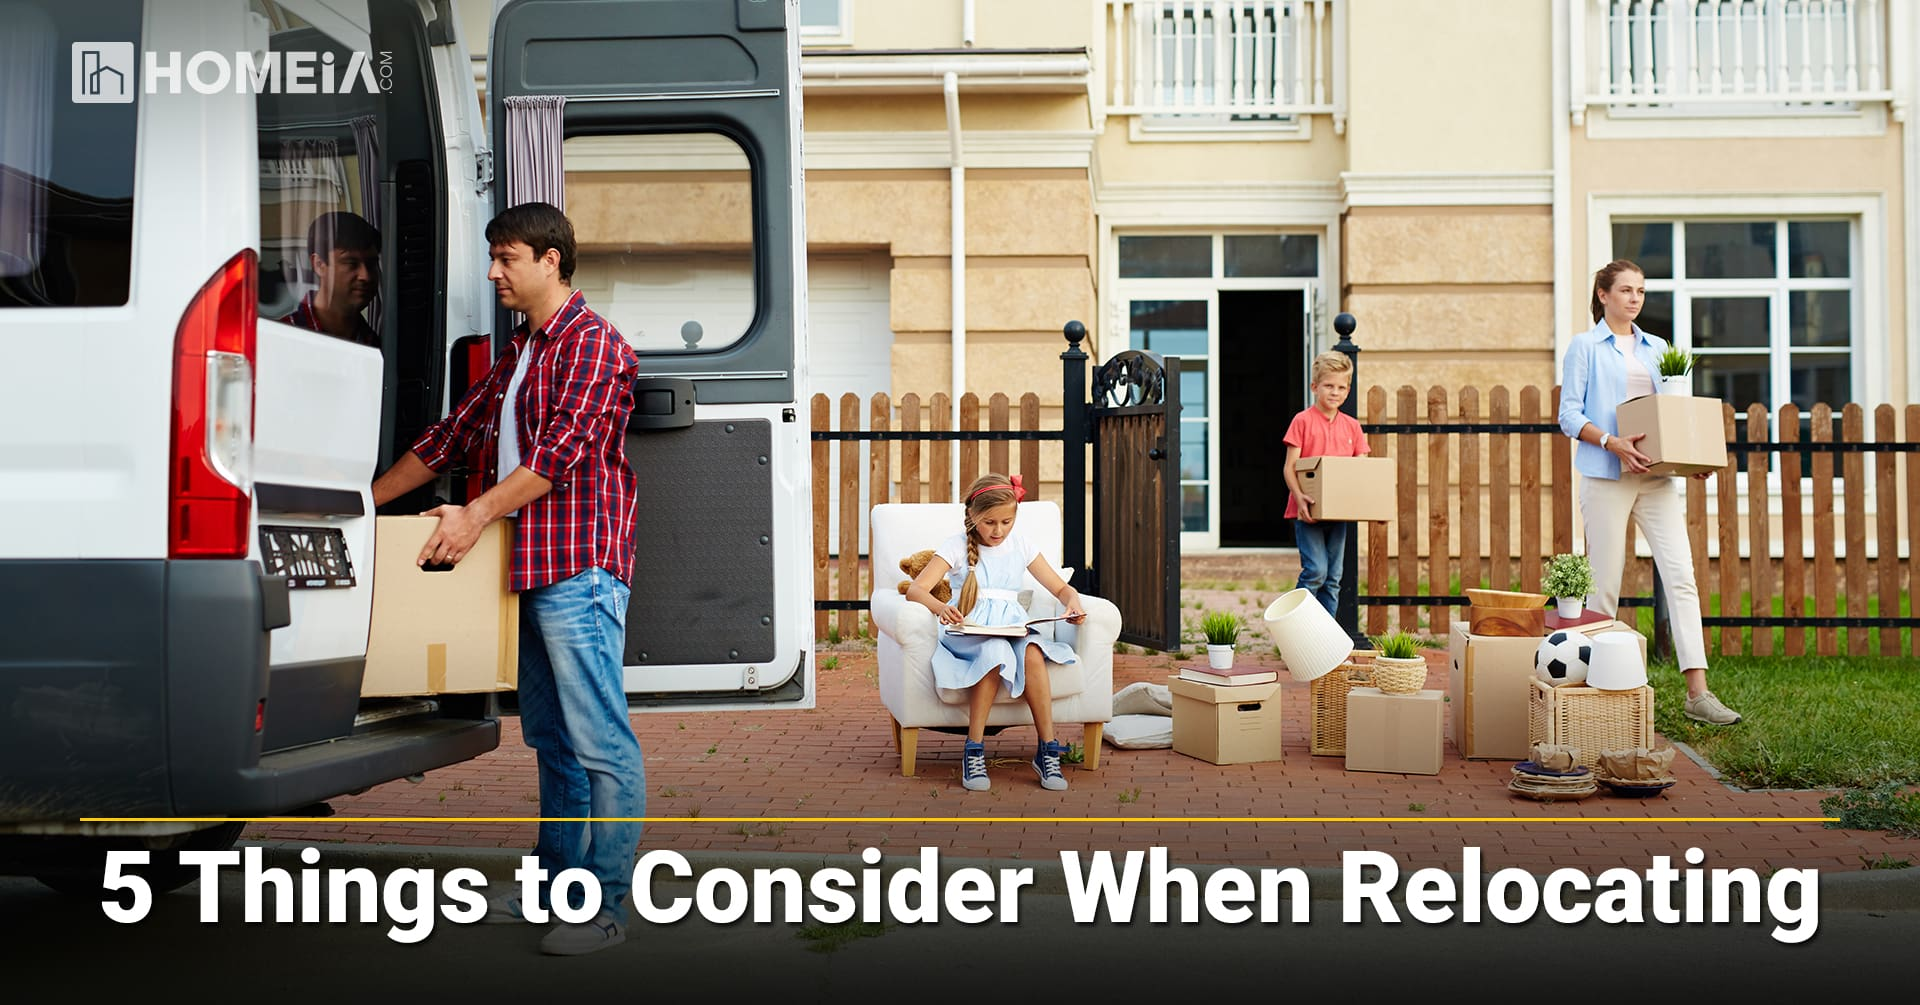 5 Things to Consider When Relocating